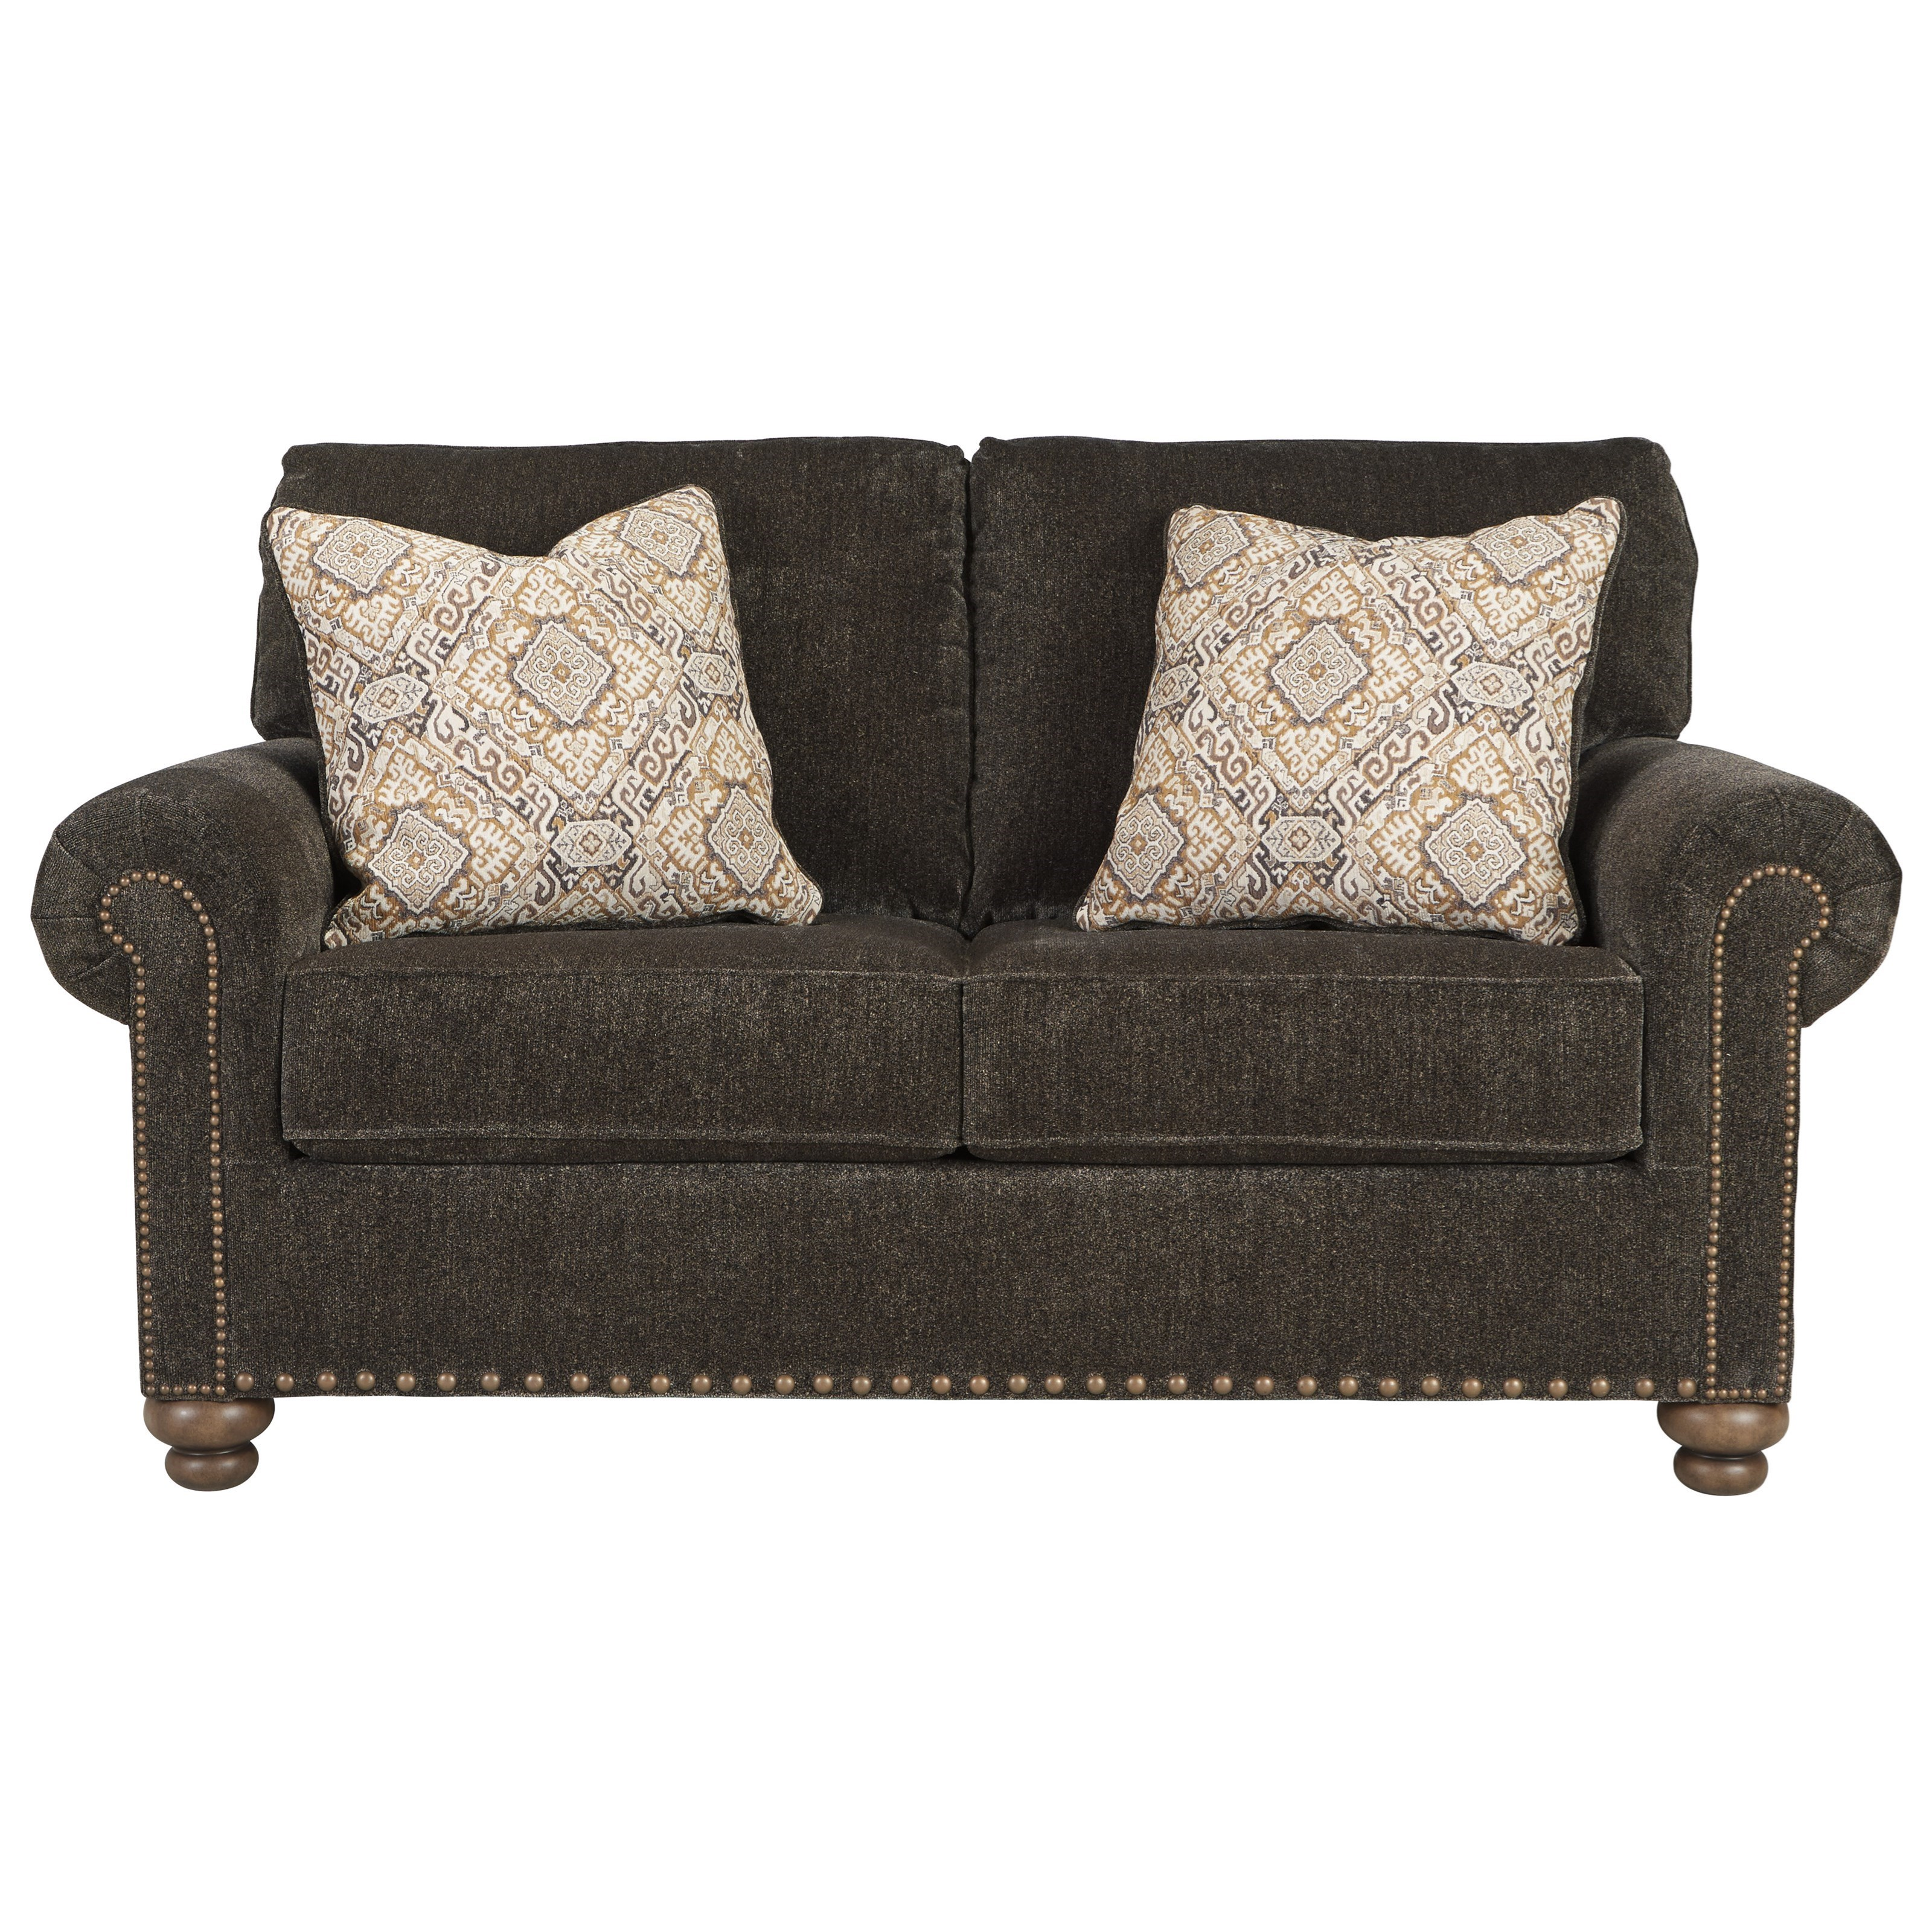 Sutton Loveseat by Signature at Walker's Furniture